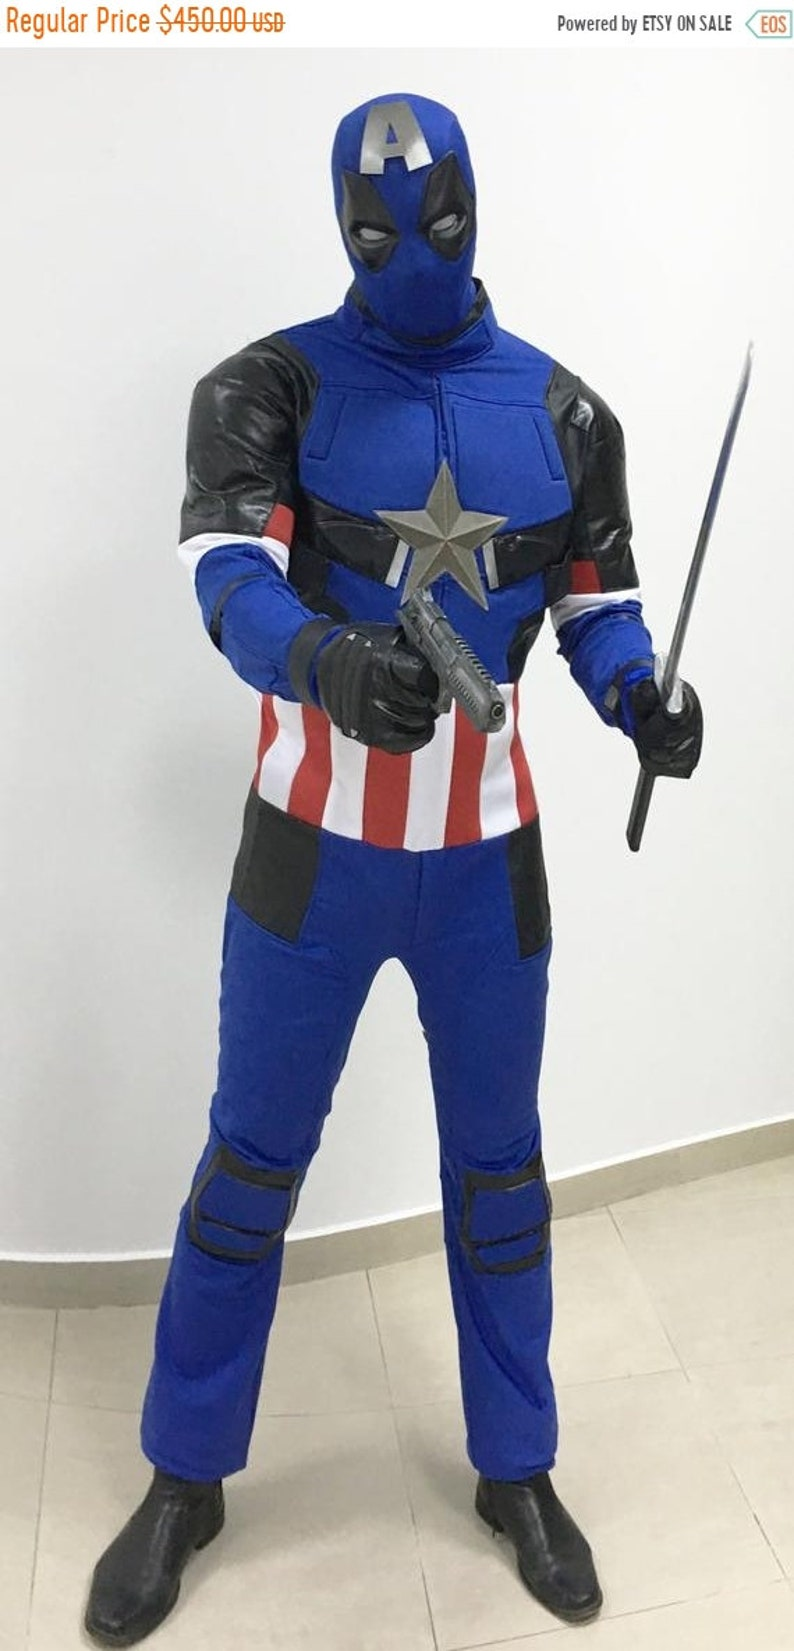 sale Blue Deadpool Captain America costume cosplay costume image 0